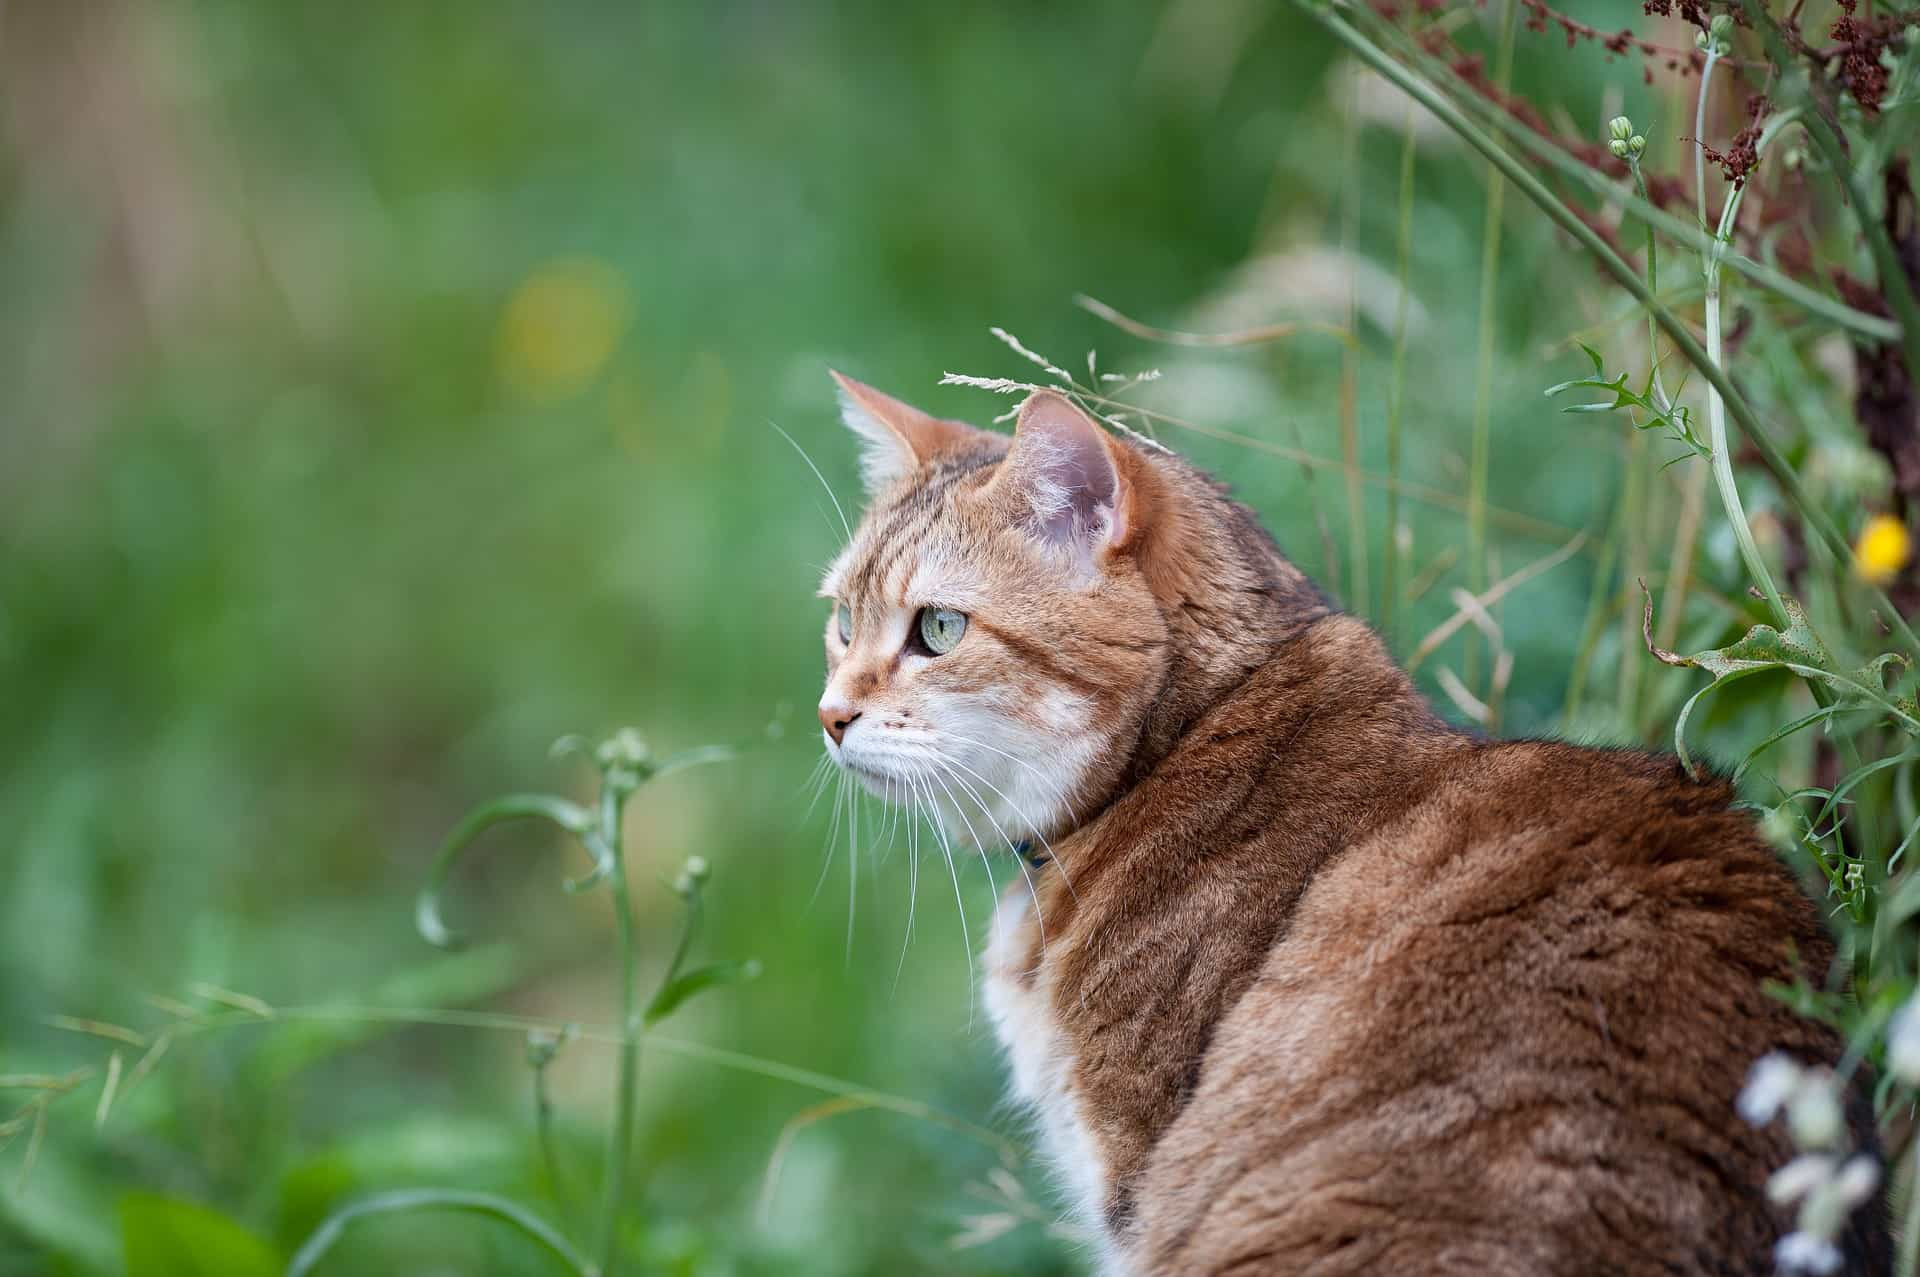 Protect your cat from outdoor pests